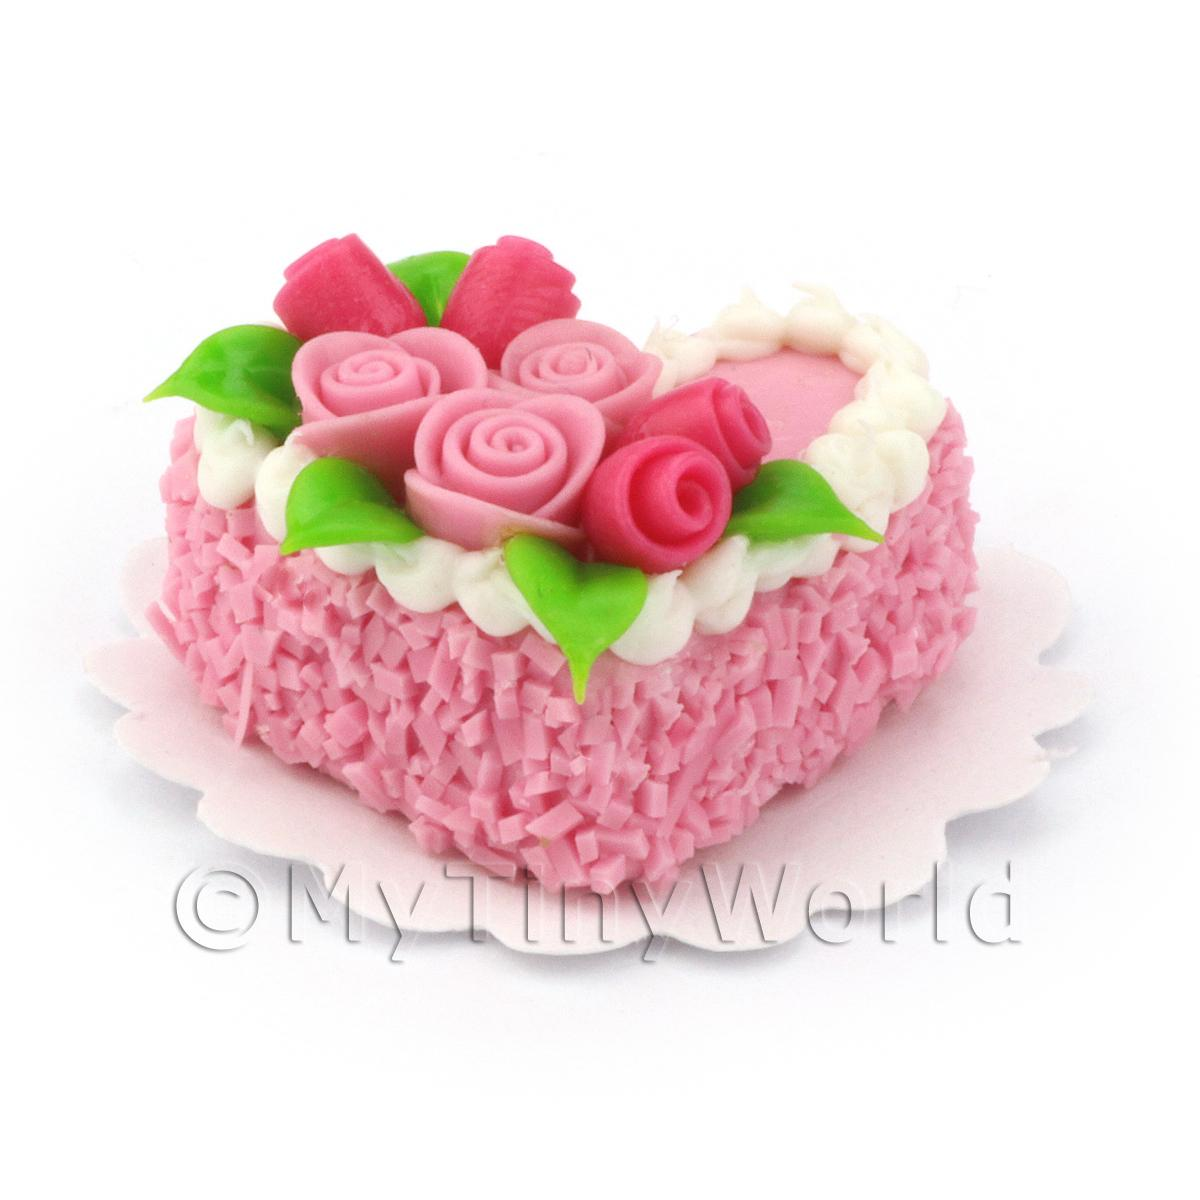 Dolls House Miniature Small Pink Heart Cake With Roses